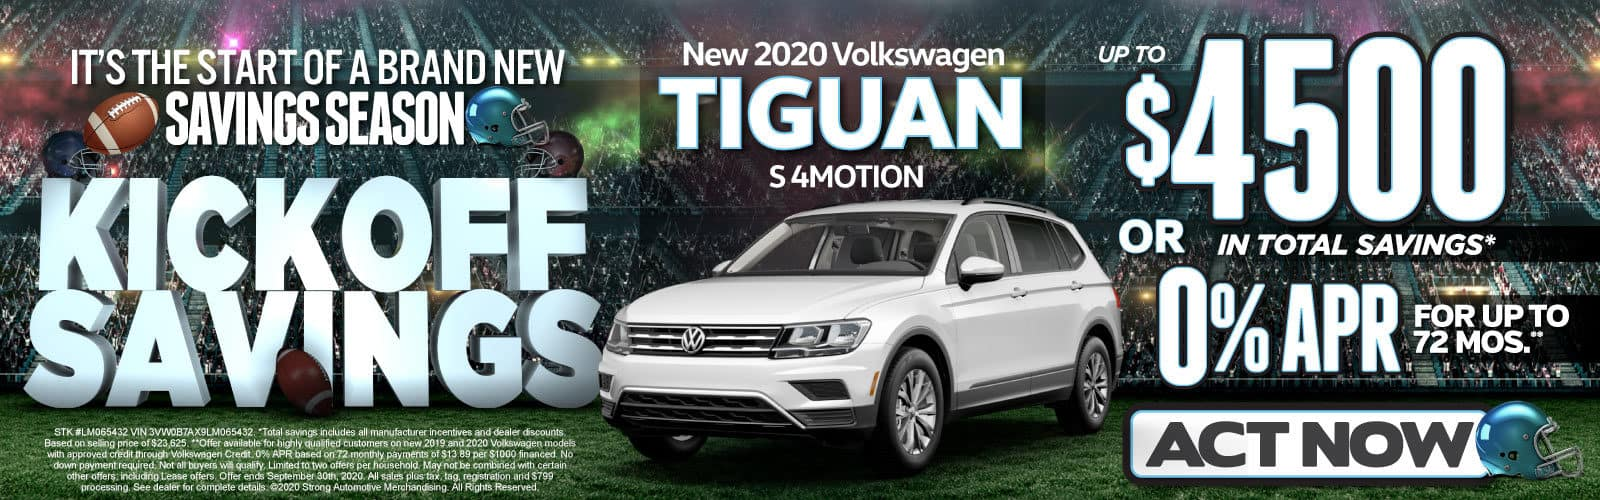 New 2020 VW Tiguan - Up to $4500 in total savings - Act Now